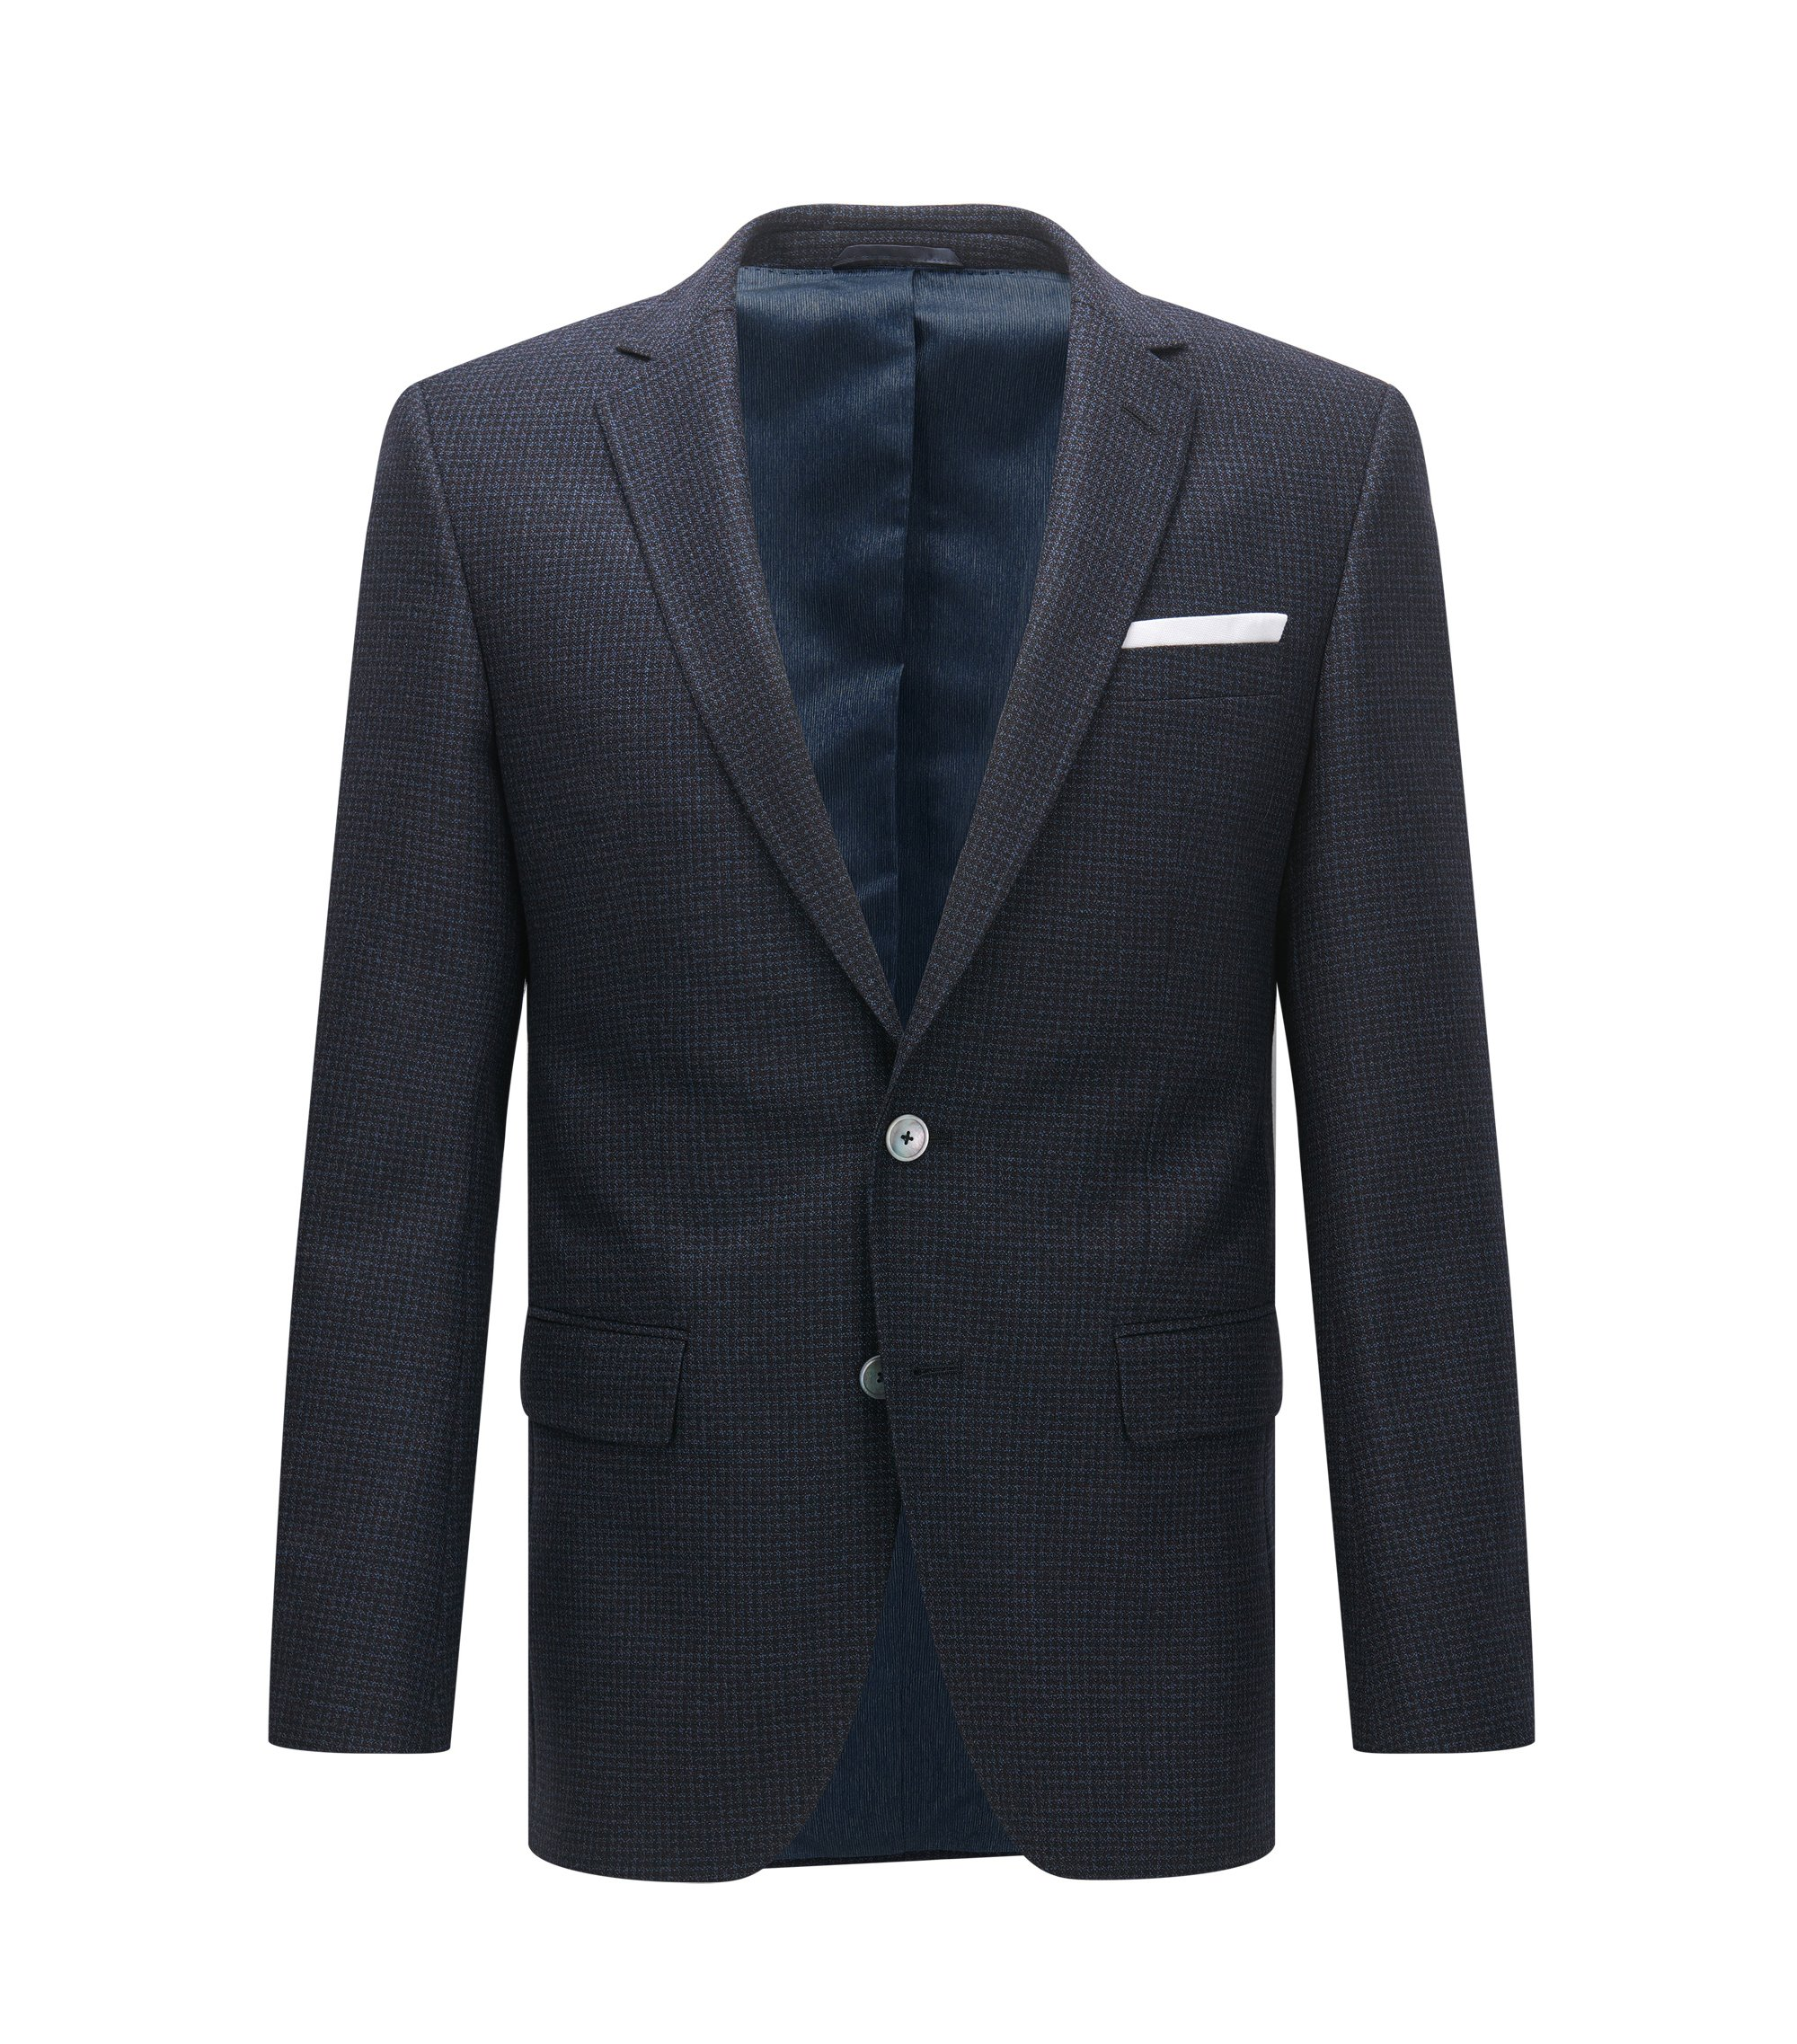 Micro-Check Virgin Wool Sport Coat, Slim Fit | Hutsons, Dark Blue